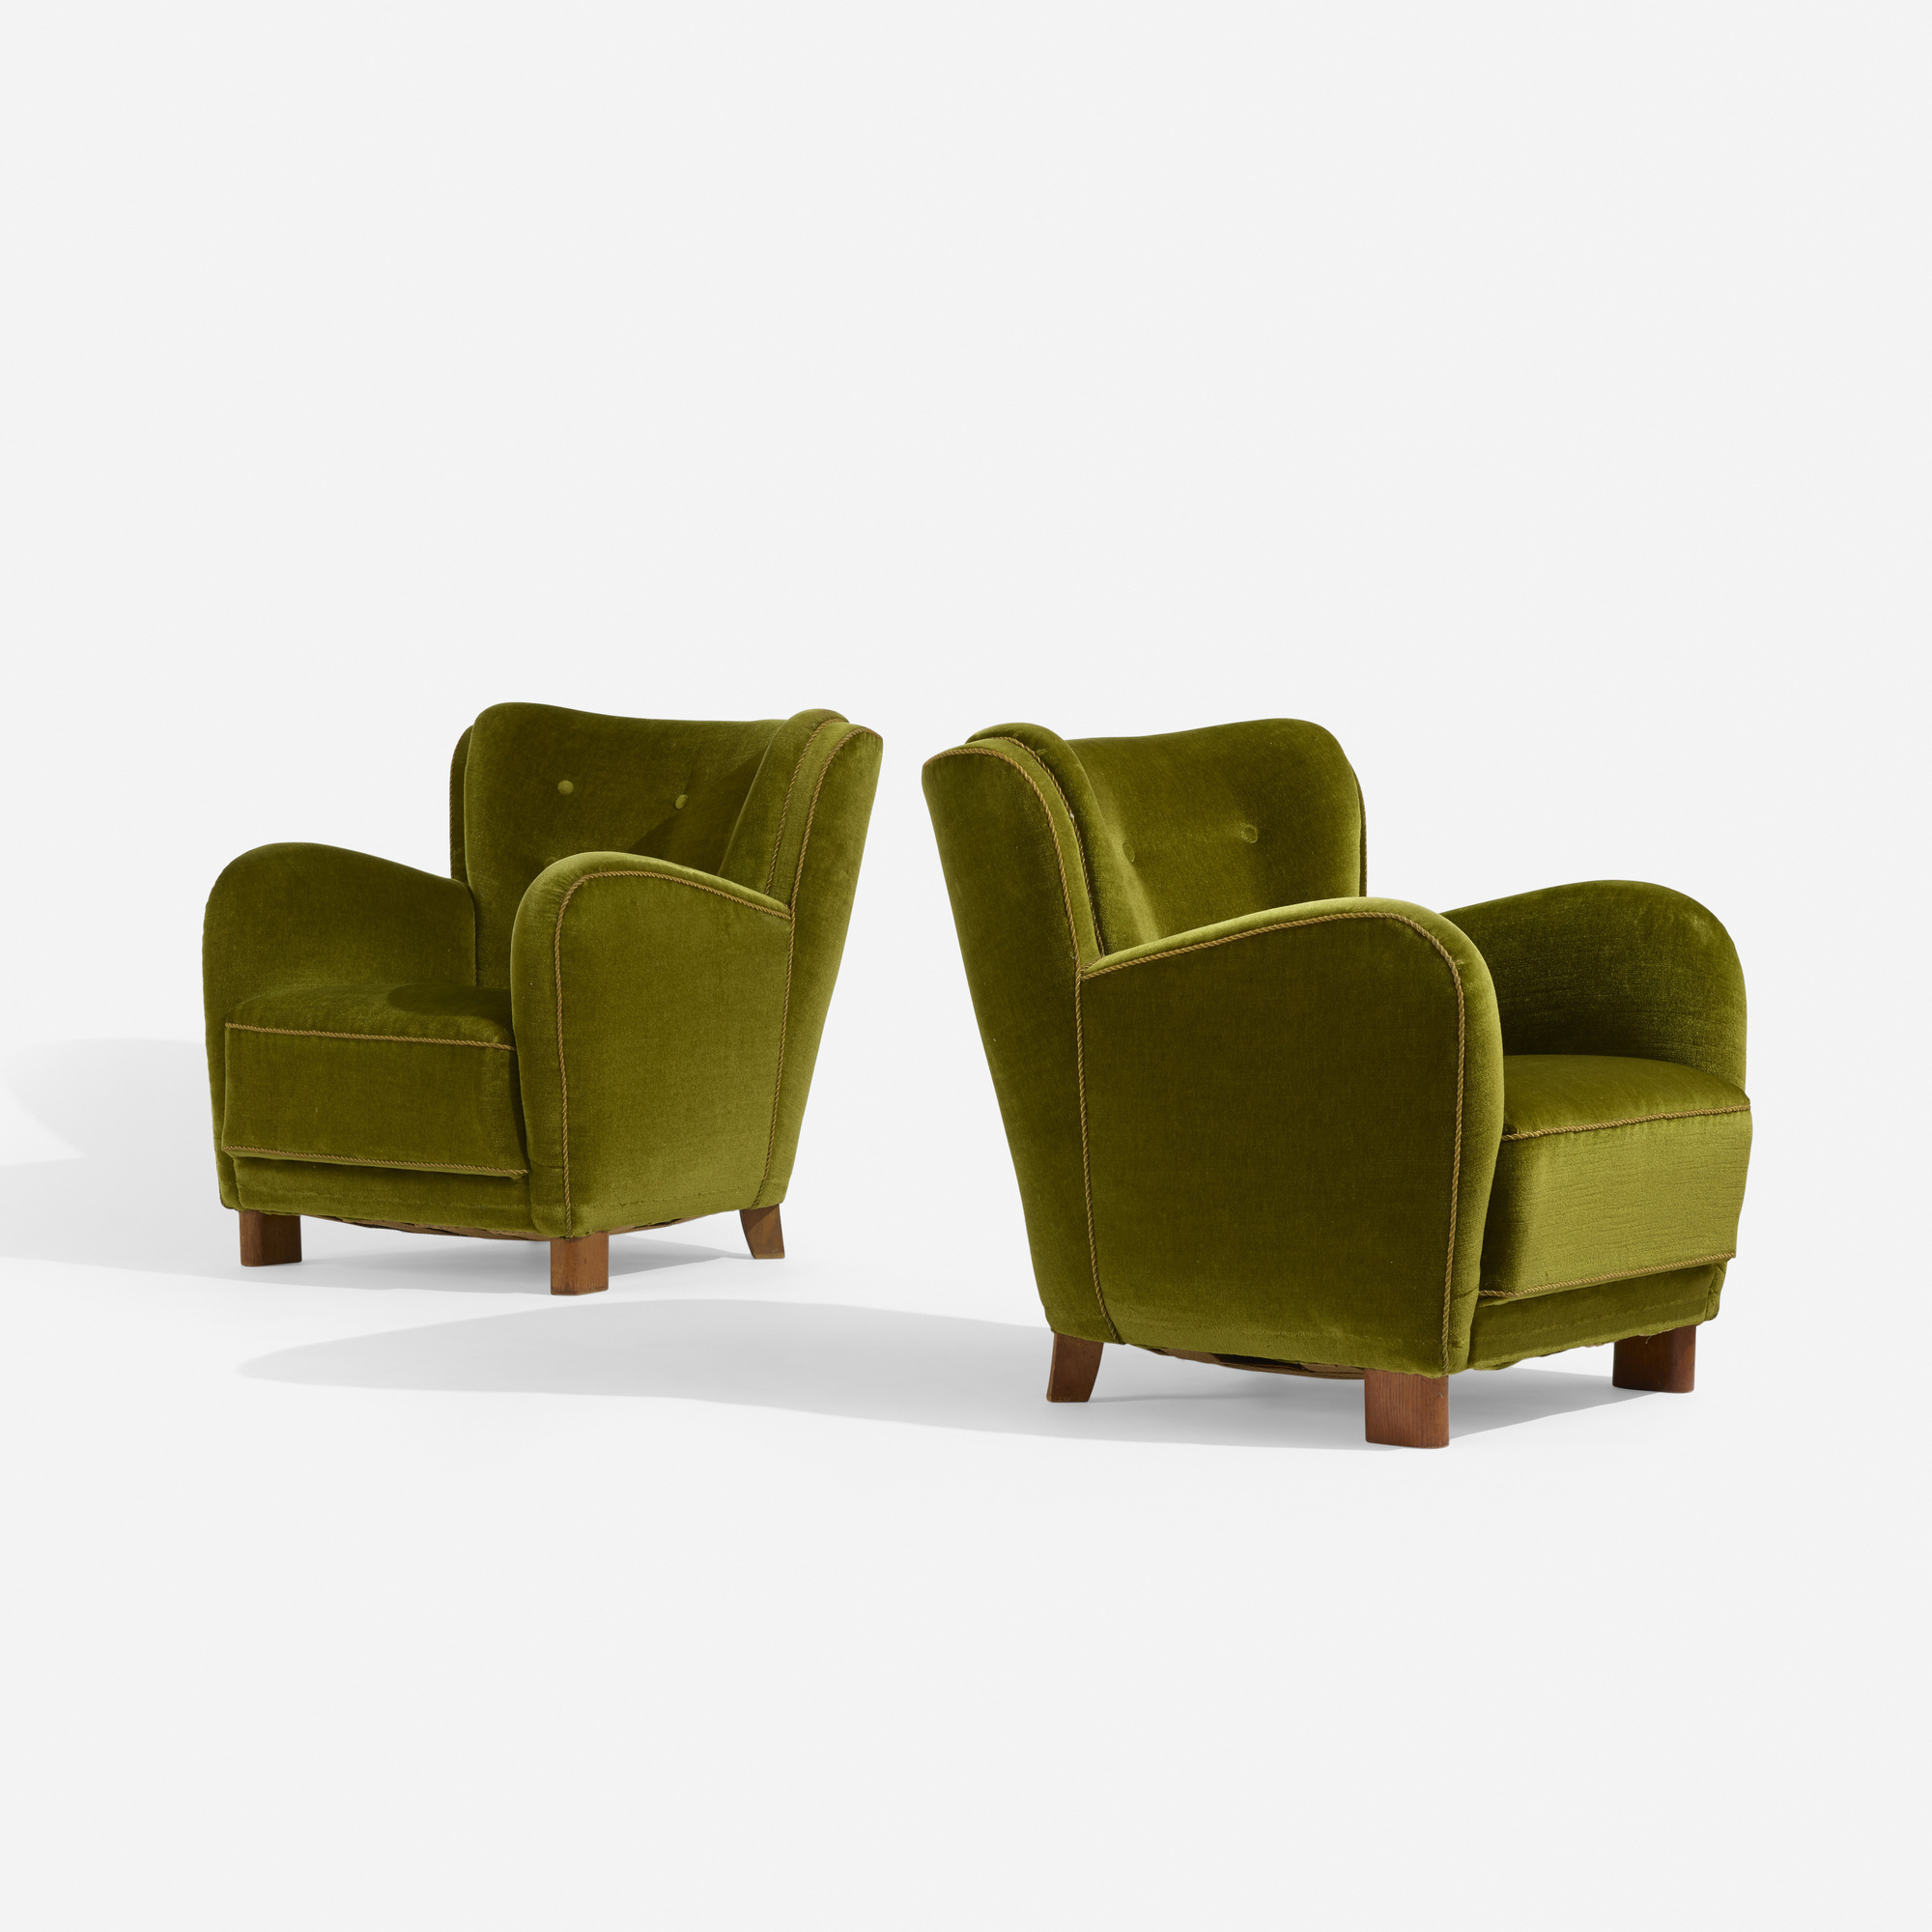 232: Fritz Hansen, attribution / lounge chairs, pair (1 of 3)